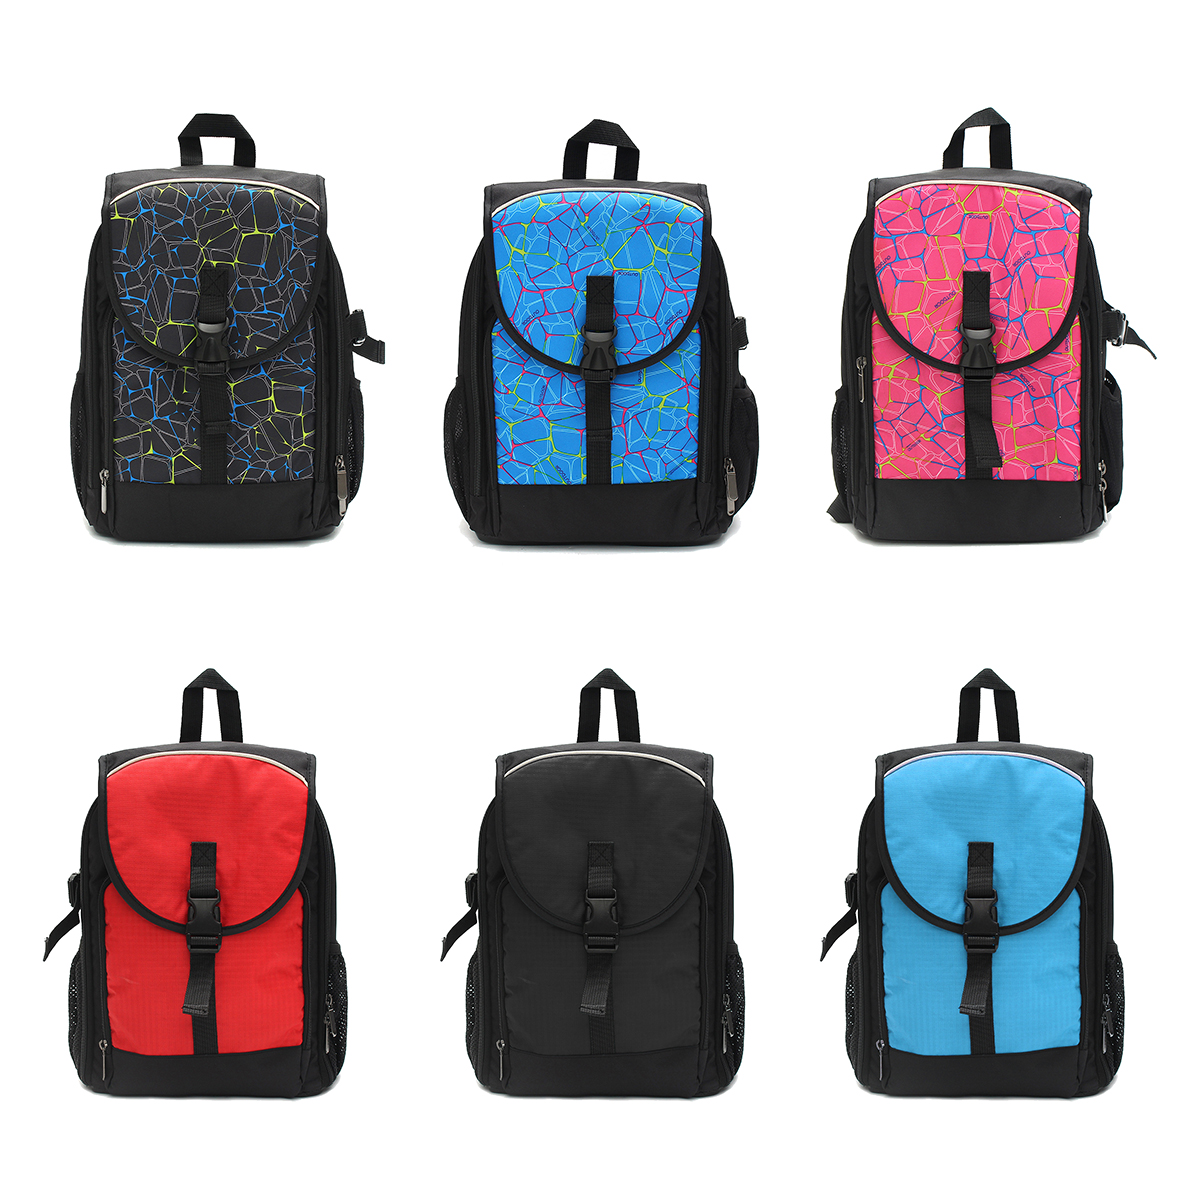 Waterproof Backpack Camera Bag with Padded Bag for DSLR Camera Lens Accessories 14